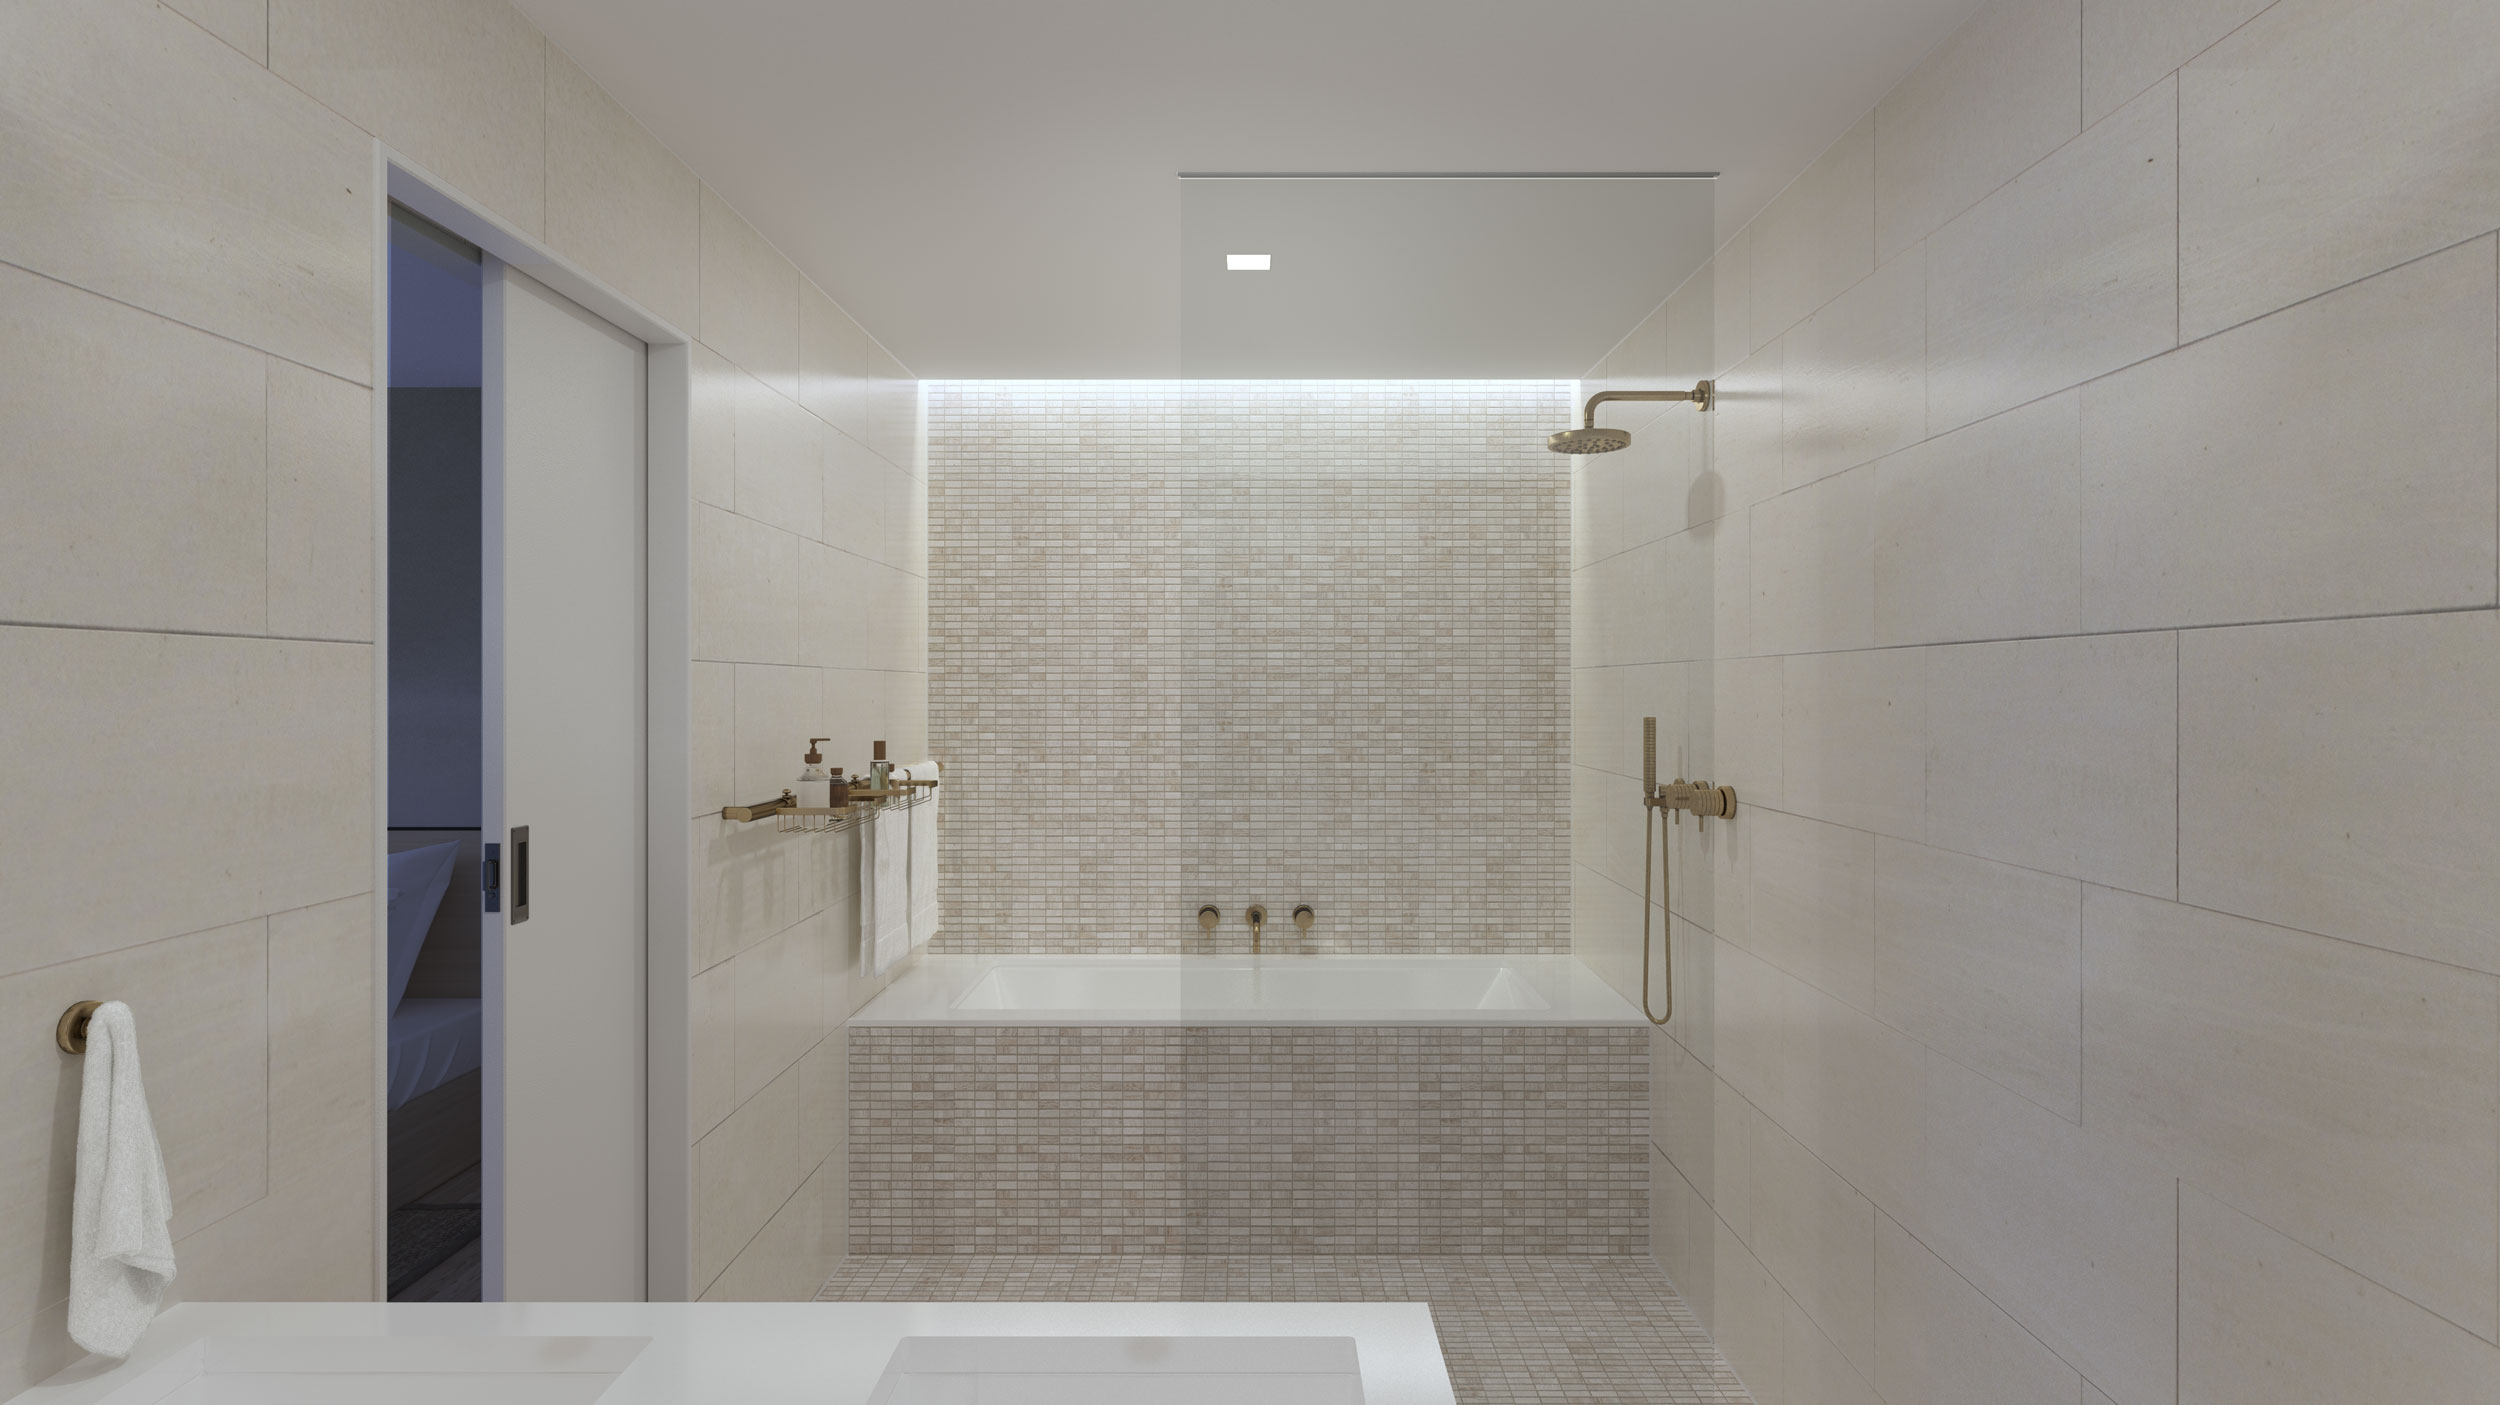 Master Baths, Second Baths, and Powder Rooms are all detailed with stylish European-inflected fixtures and finishes.